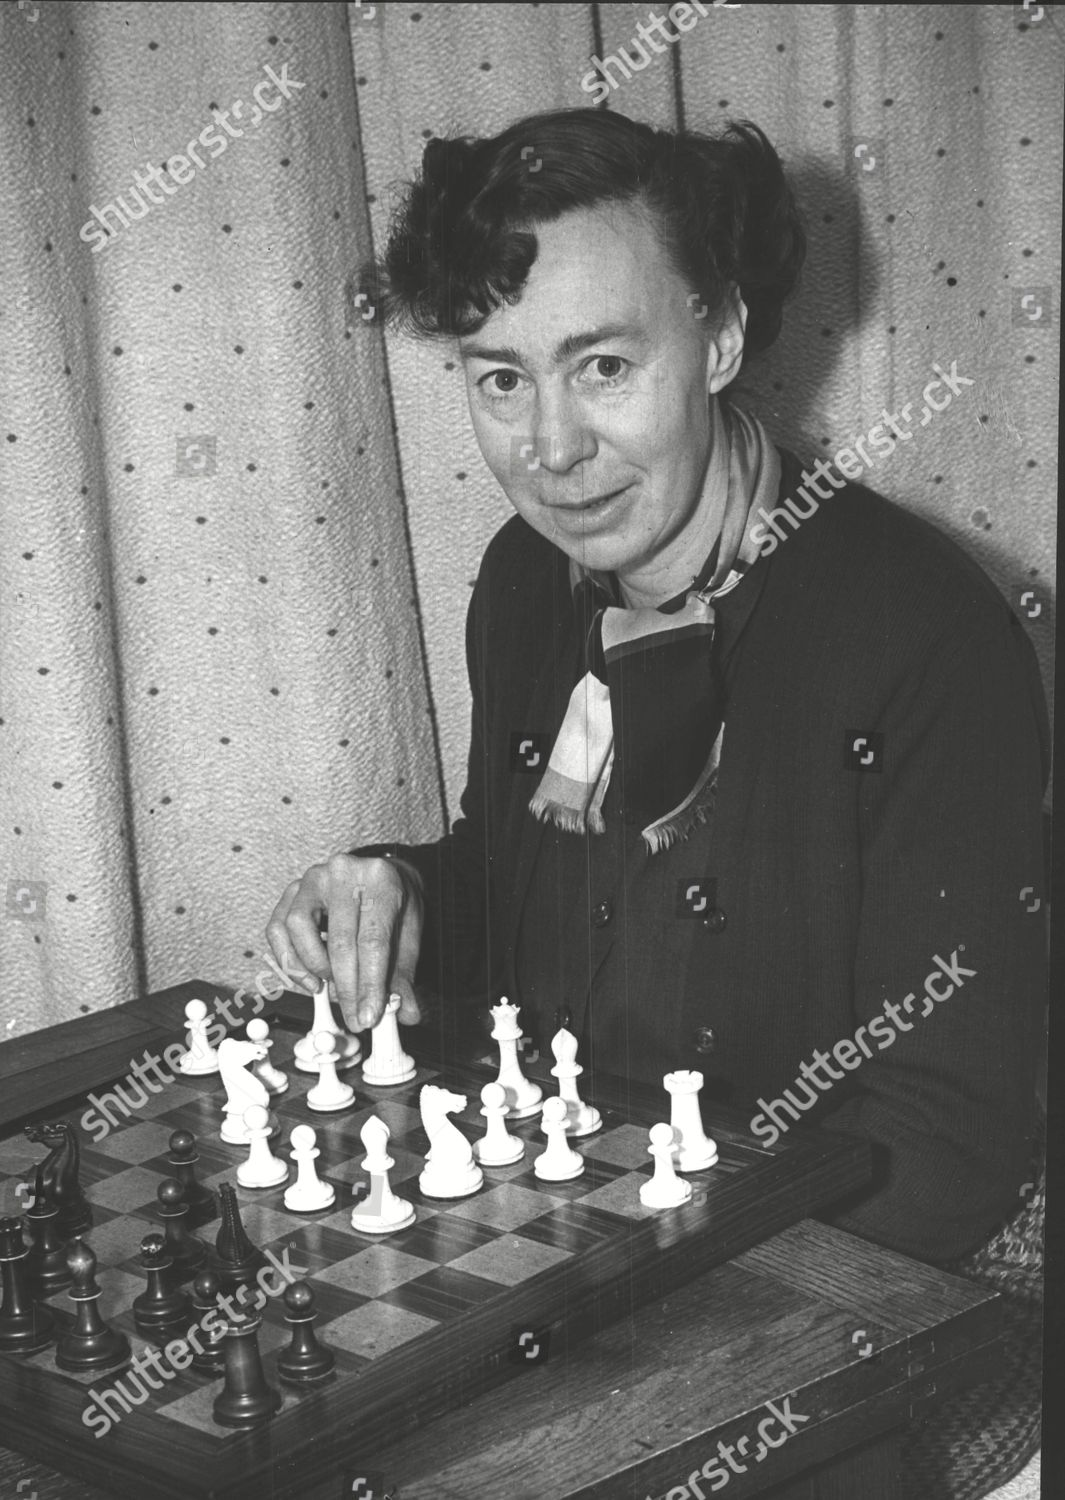 Mandatory Credit: Photo by ANL/Shutterstock (4745287a) Miss Eileen Tranmer 43-year-old British Women's Chess Champion. Box 556. Miss Eileen Tranmer 43-year-old British Women's Chess Champion. Box 556.